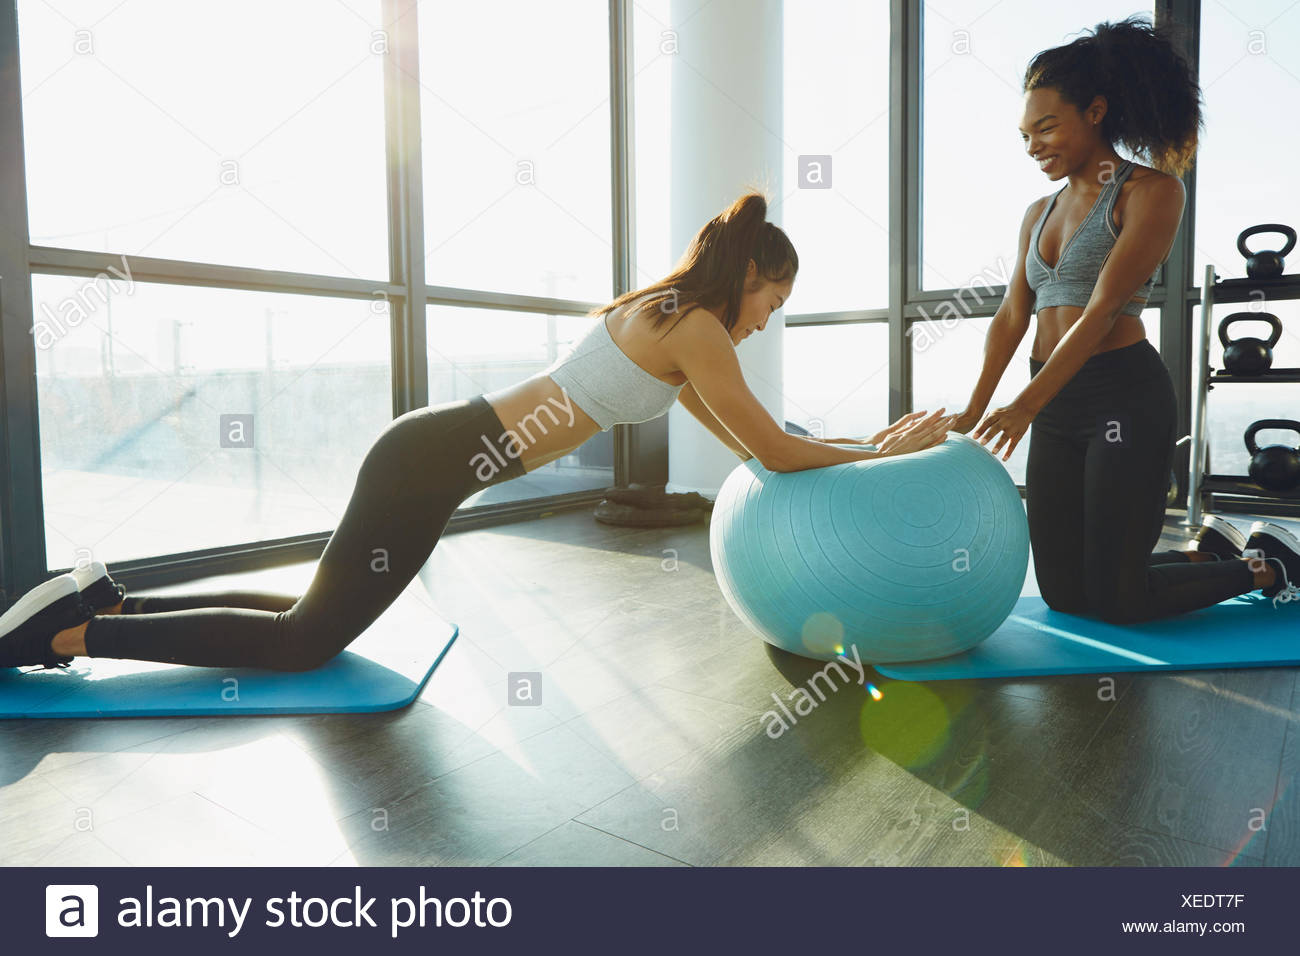 Two young women exercising in gym, using inflatable exercise ball - Stock Image